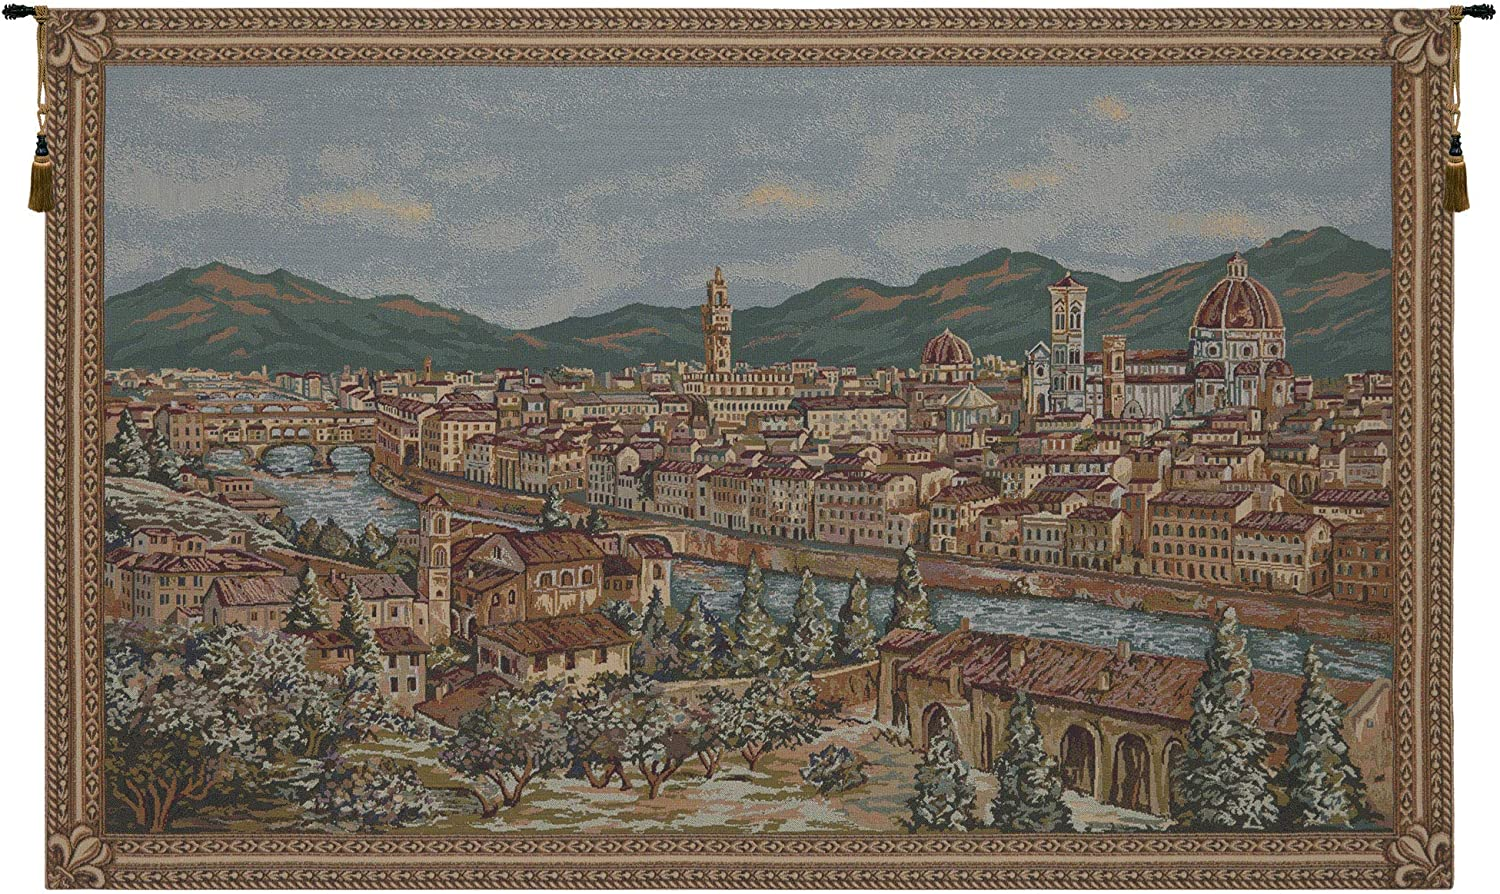 Charlotte Home Furnishings Inc Firenze By Alberto Passini Italian Small Tapestry Wall Hanging Viscose Cotton And Polyester Blend Wall Art 43 In X 26 In Home Decor Accents Everything Else